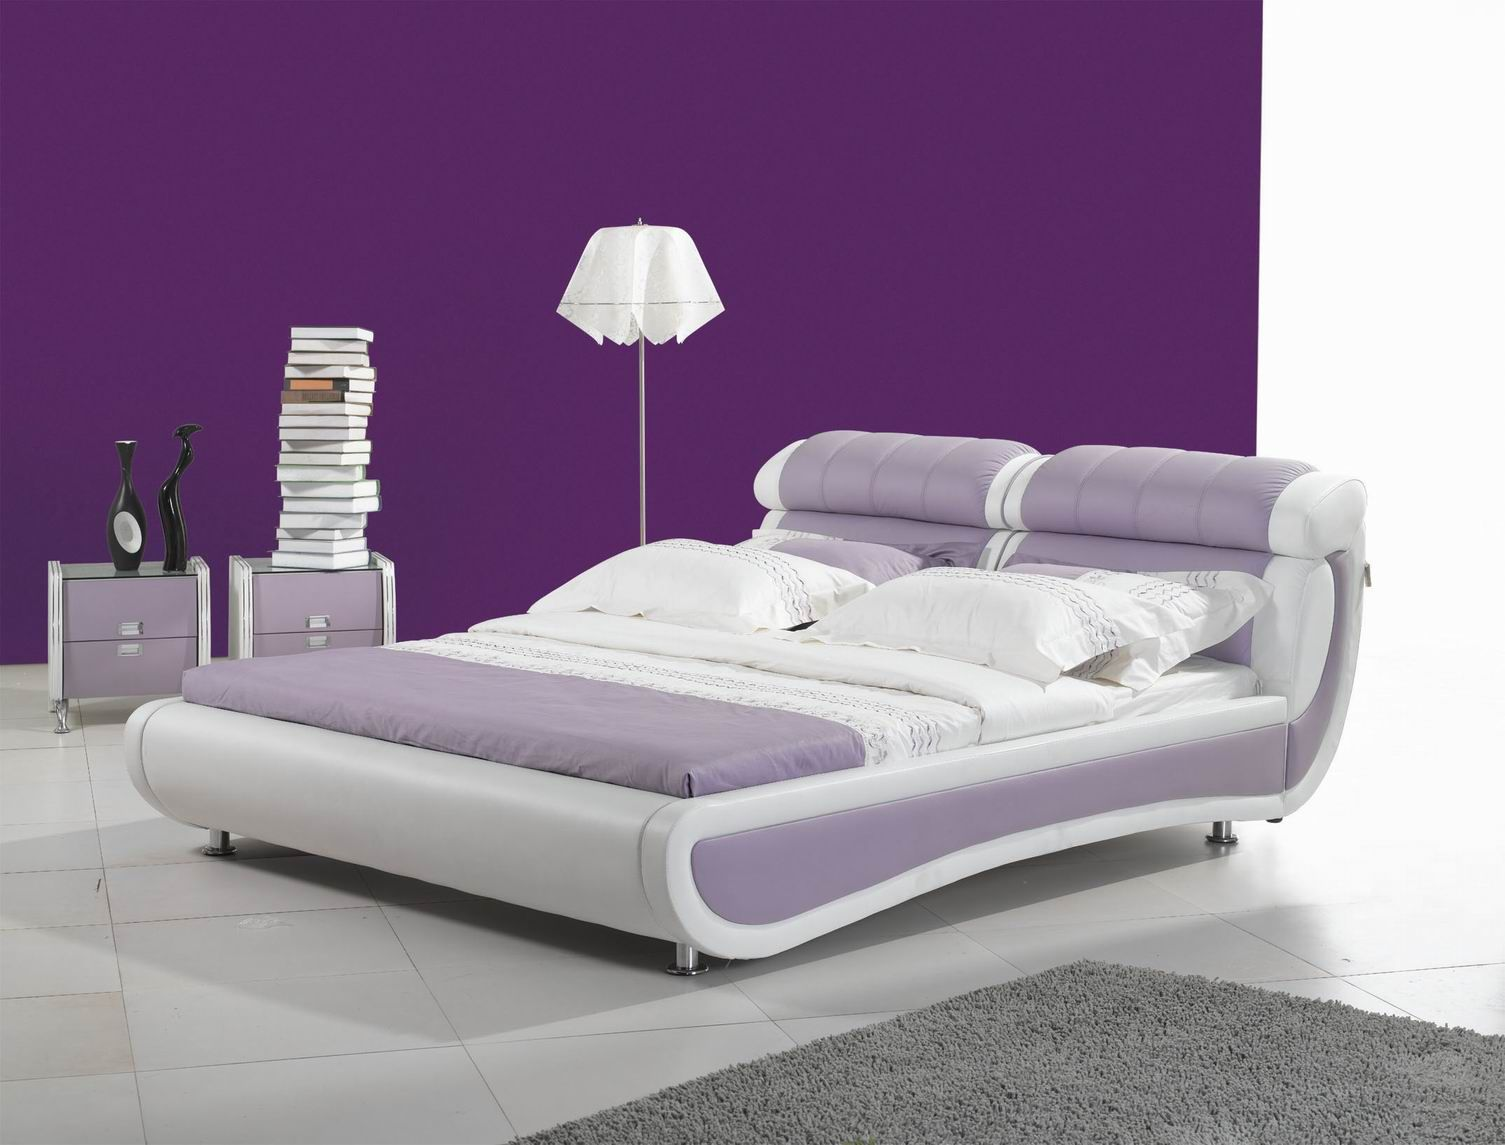 Purple Bedroom Furniture Leather Furniture Bedroom Furniture China Models Looks Like A